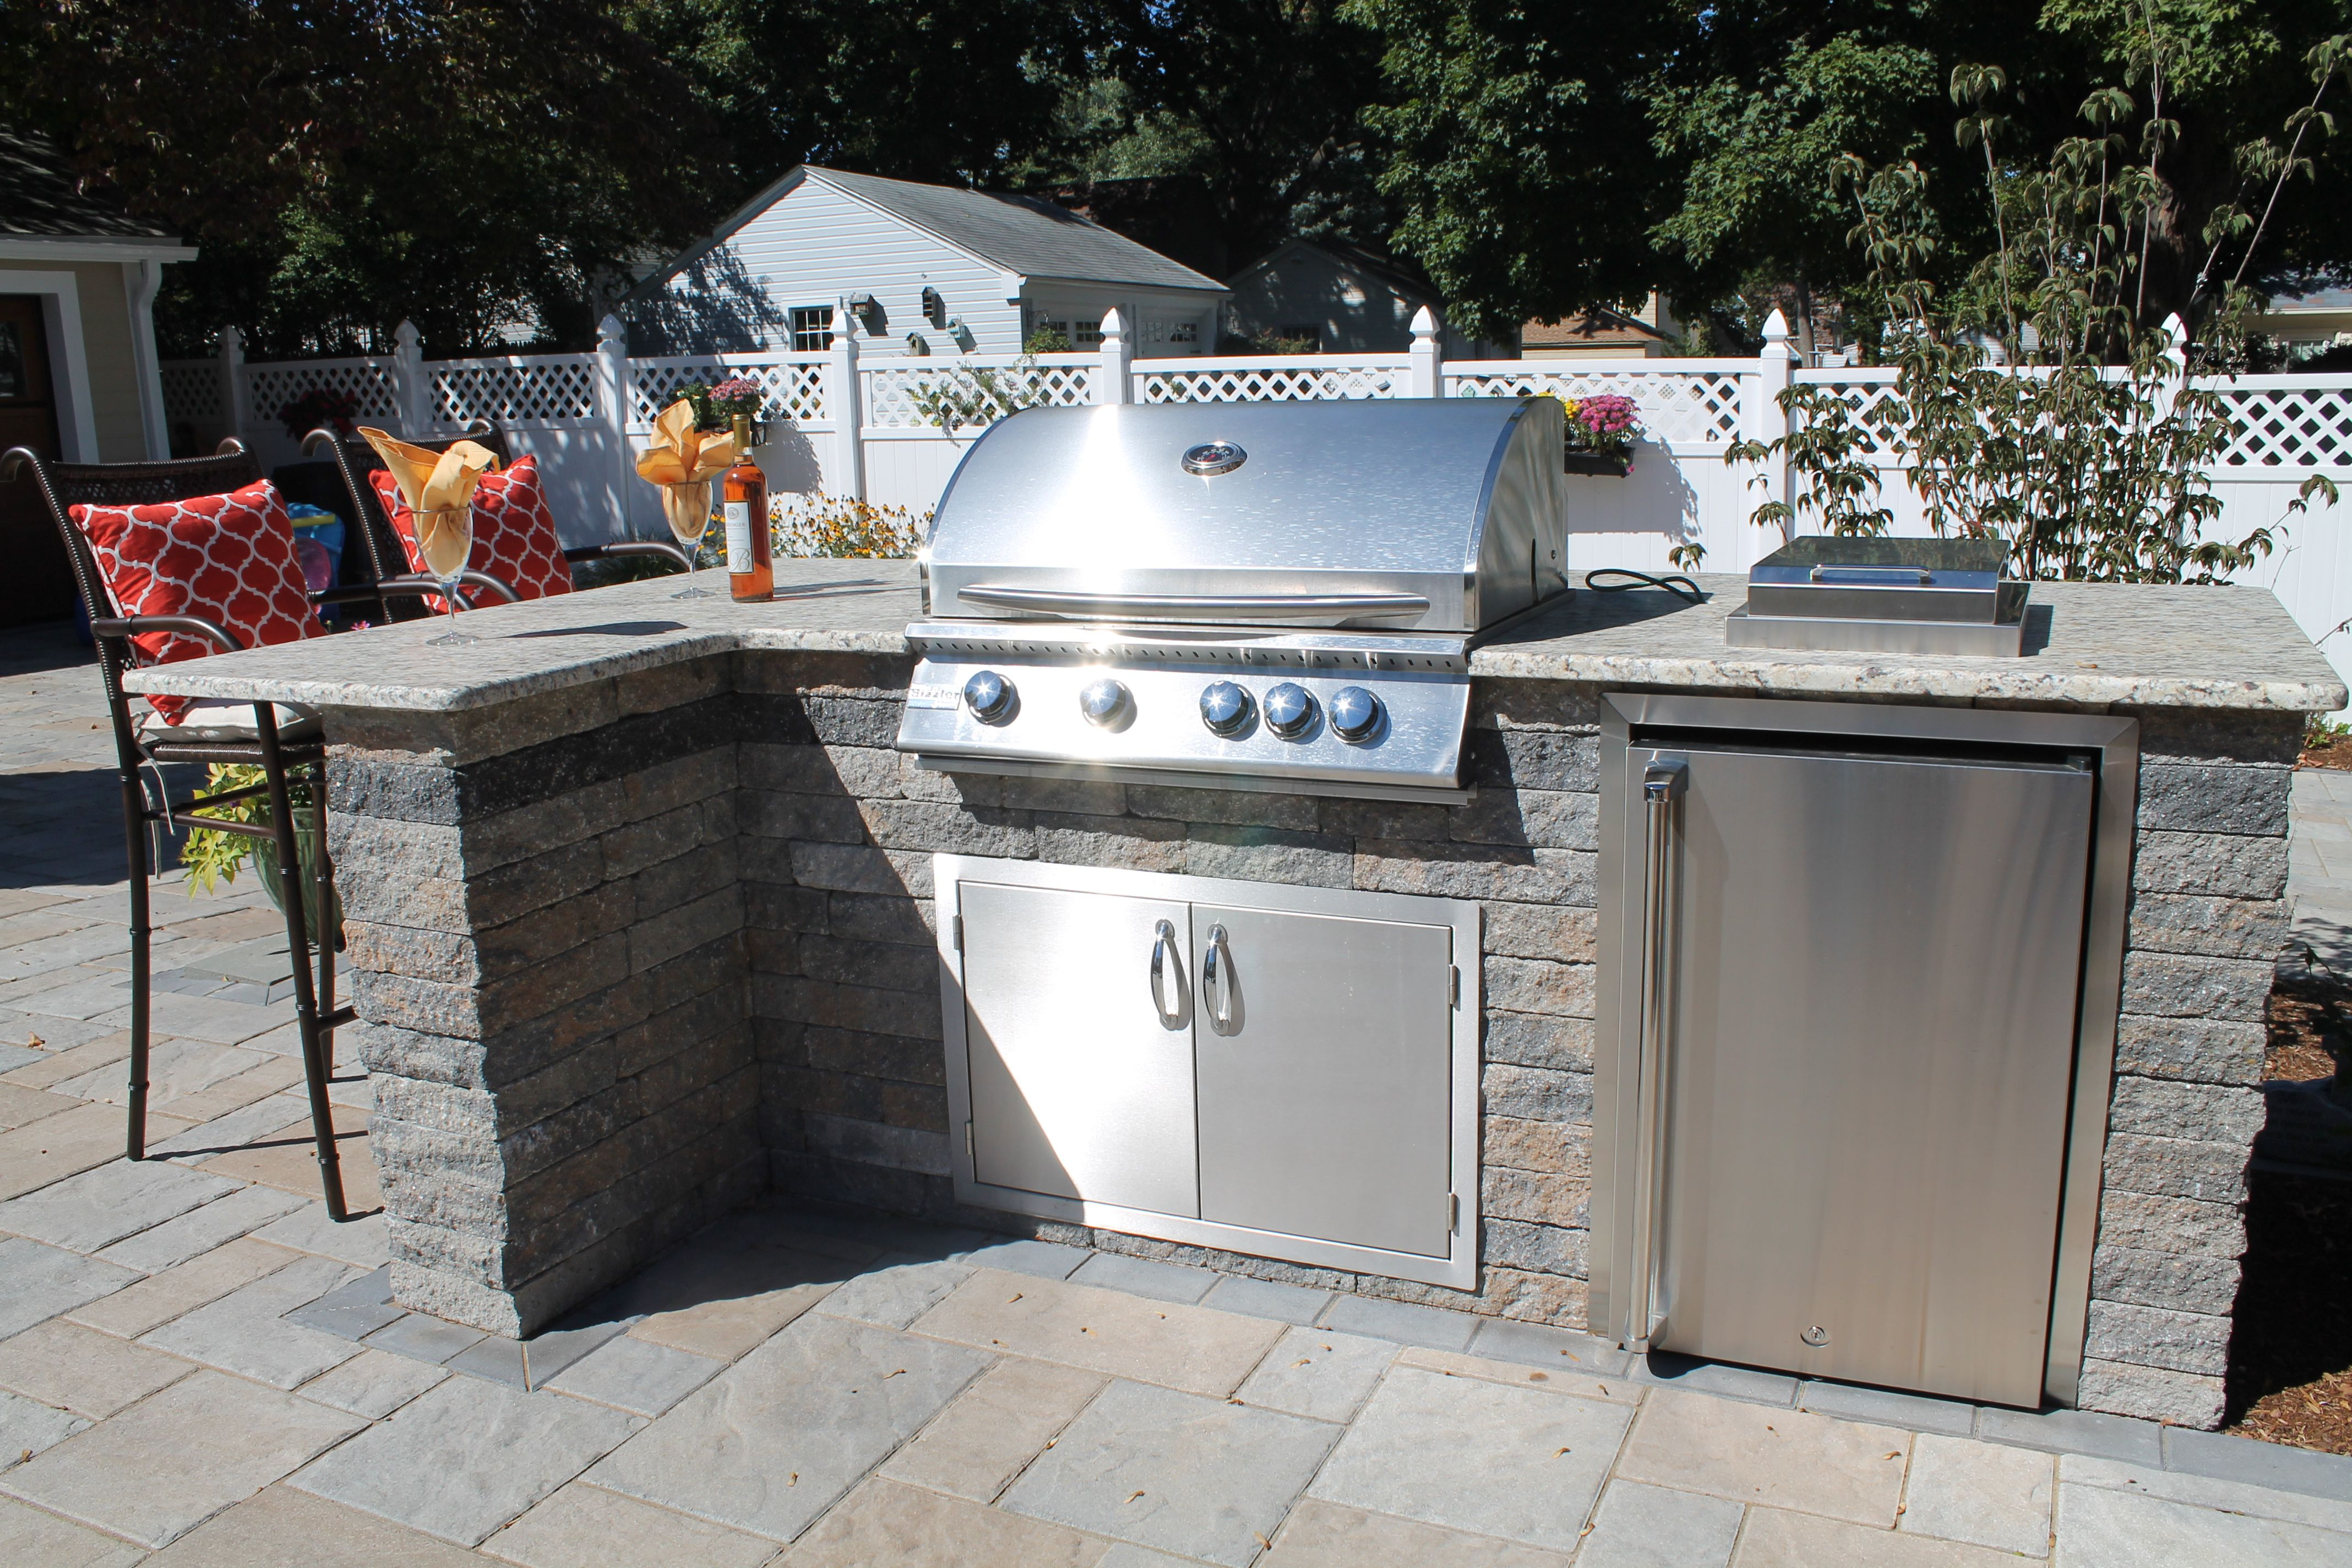 Outdoor Kitchen With Granite Counter Tops Built In Grill And Side Burner Refrigerator And Bar Area Outdoor Kitchen Countertops Built In Grill Outdoor Kitchen